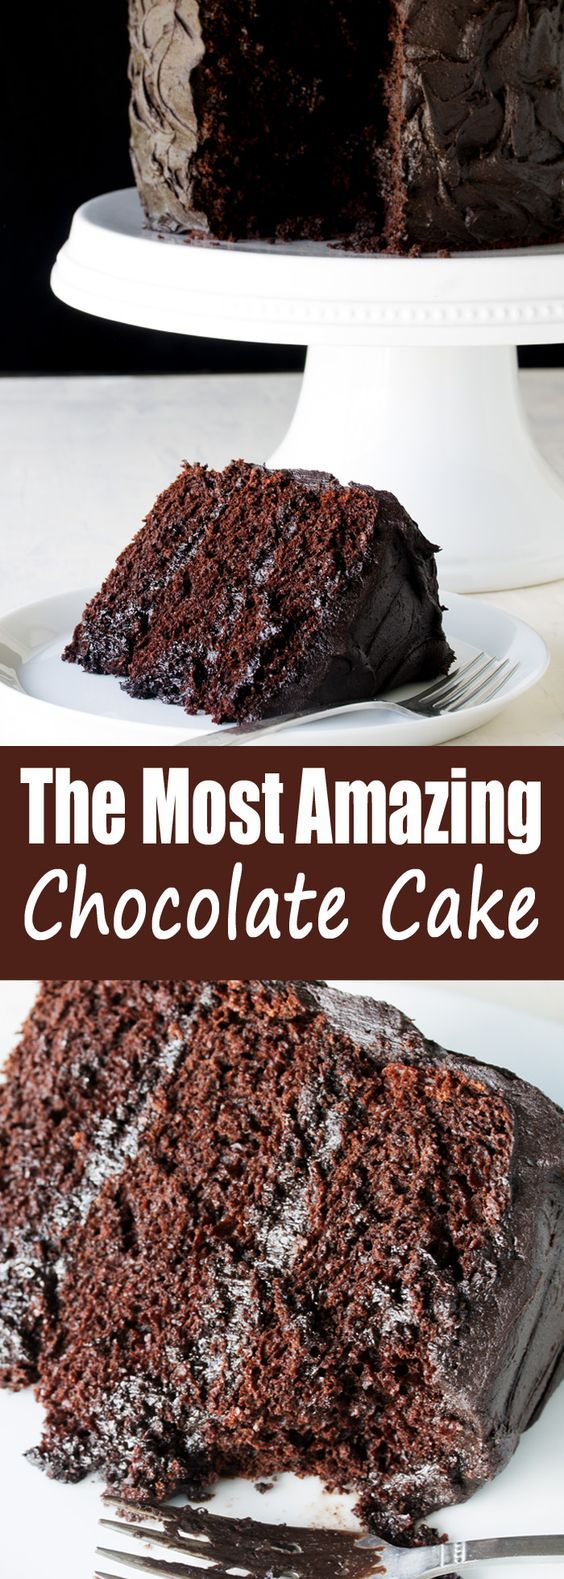 The Most Amazing Chocolate Cake is here. I call this my Matilda Cake because I swear it's just as good as